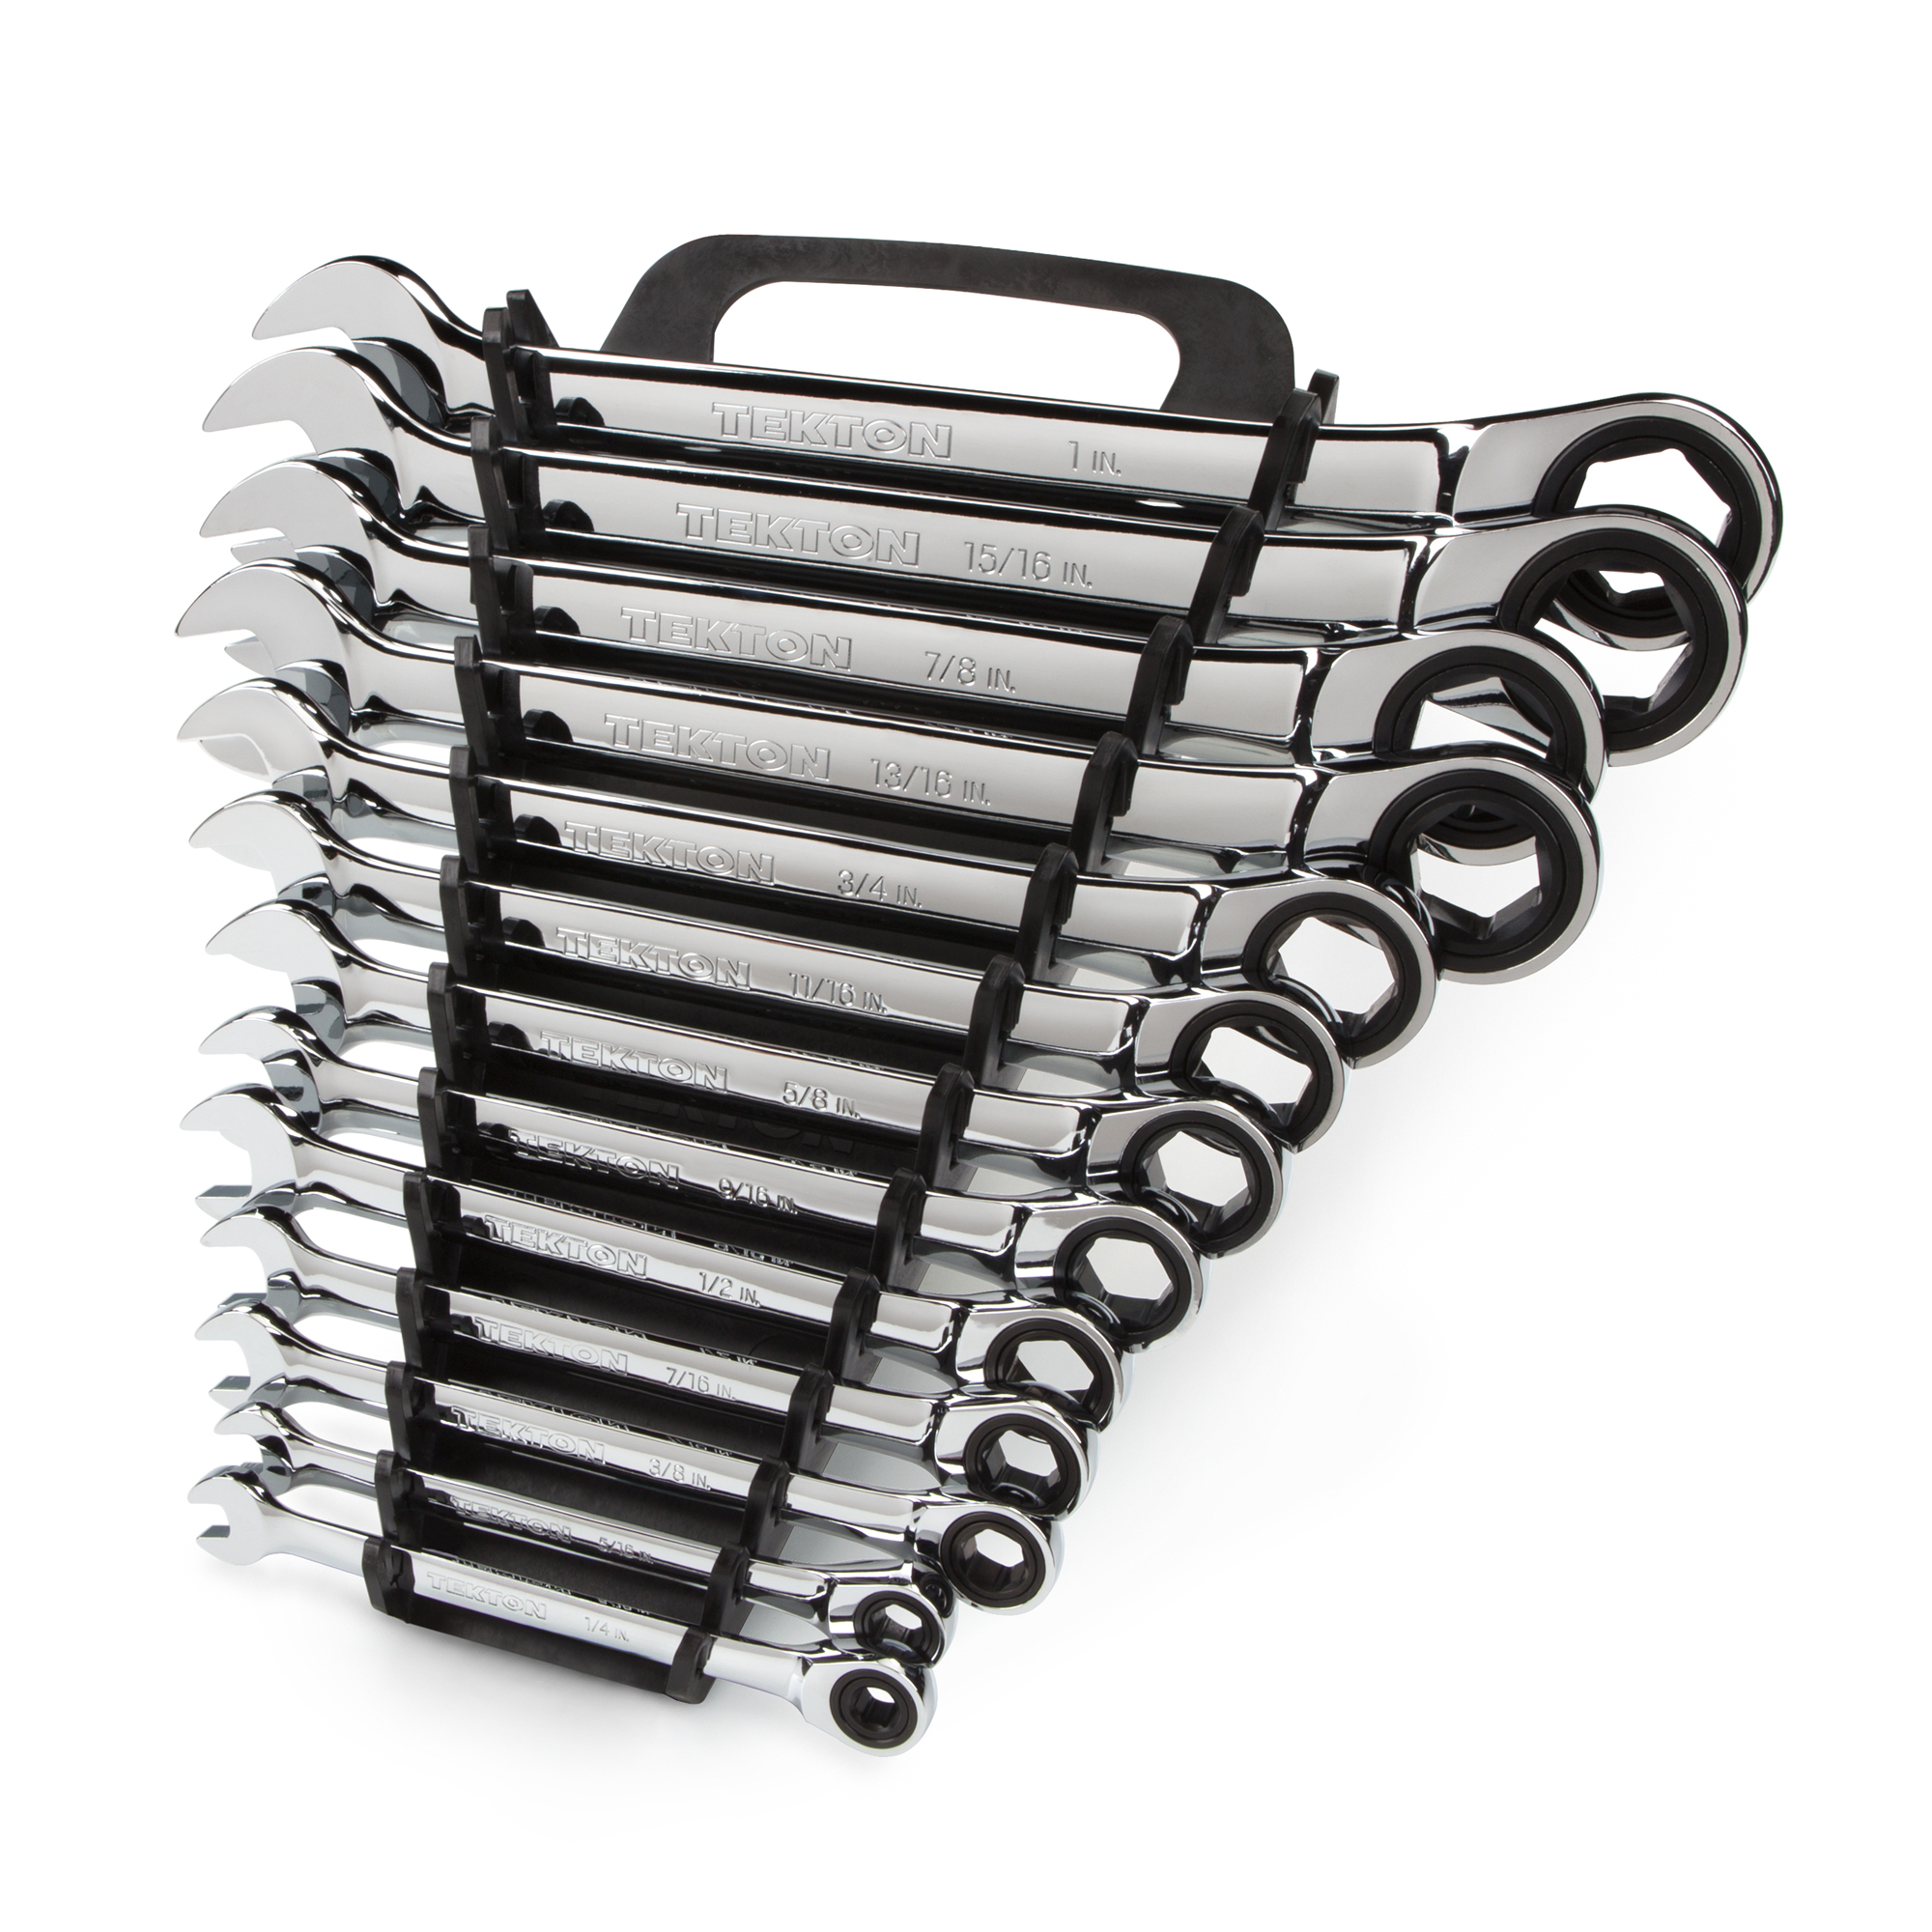 TEKTON Ratcheting Combination Wrench Set, 13-Piece (1 4-1 in.) Keeper | WRN53071 by TEKTON